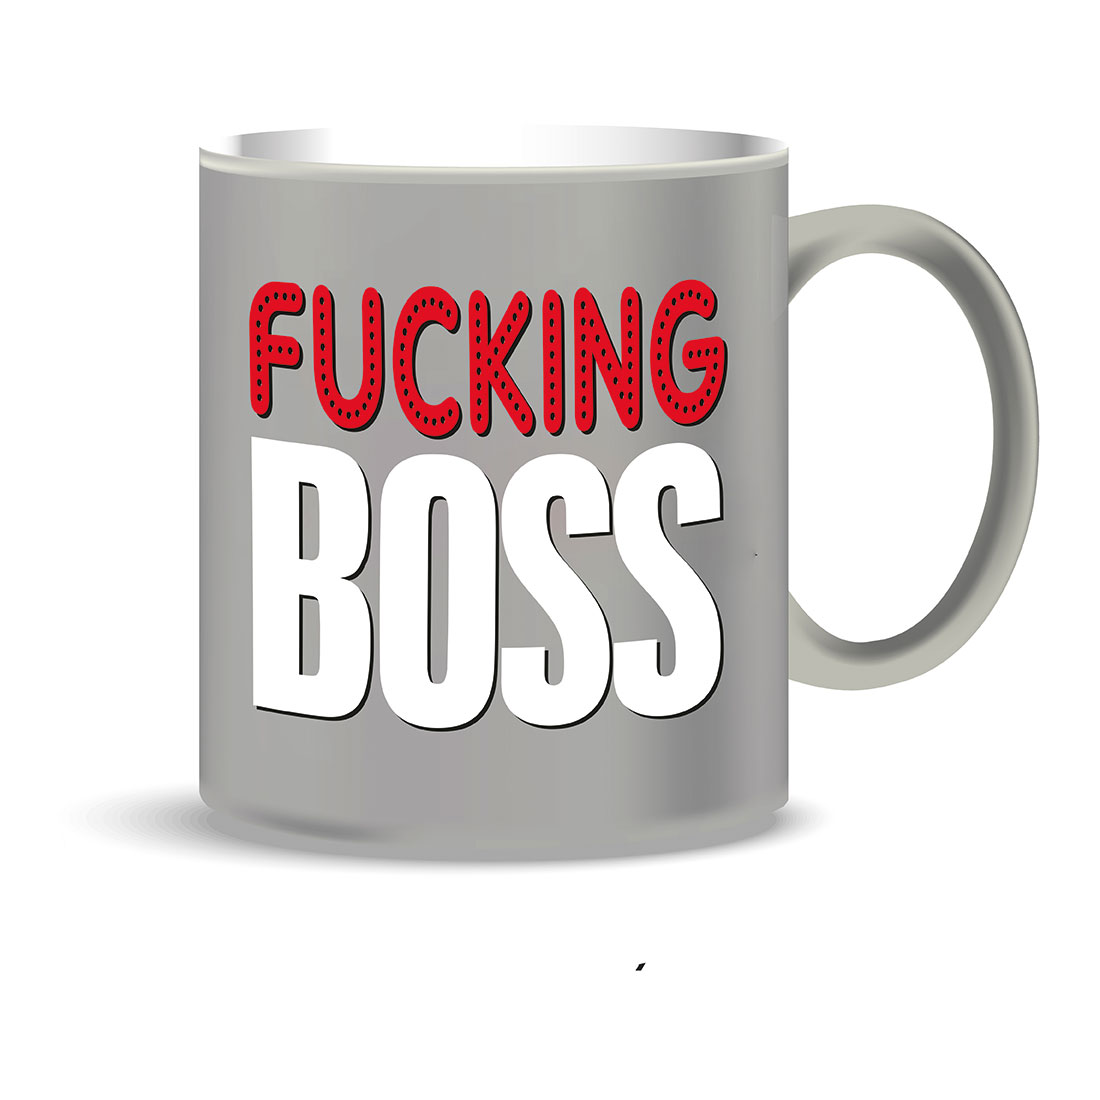 Mug grigia FUKING BOSS